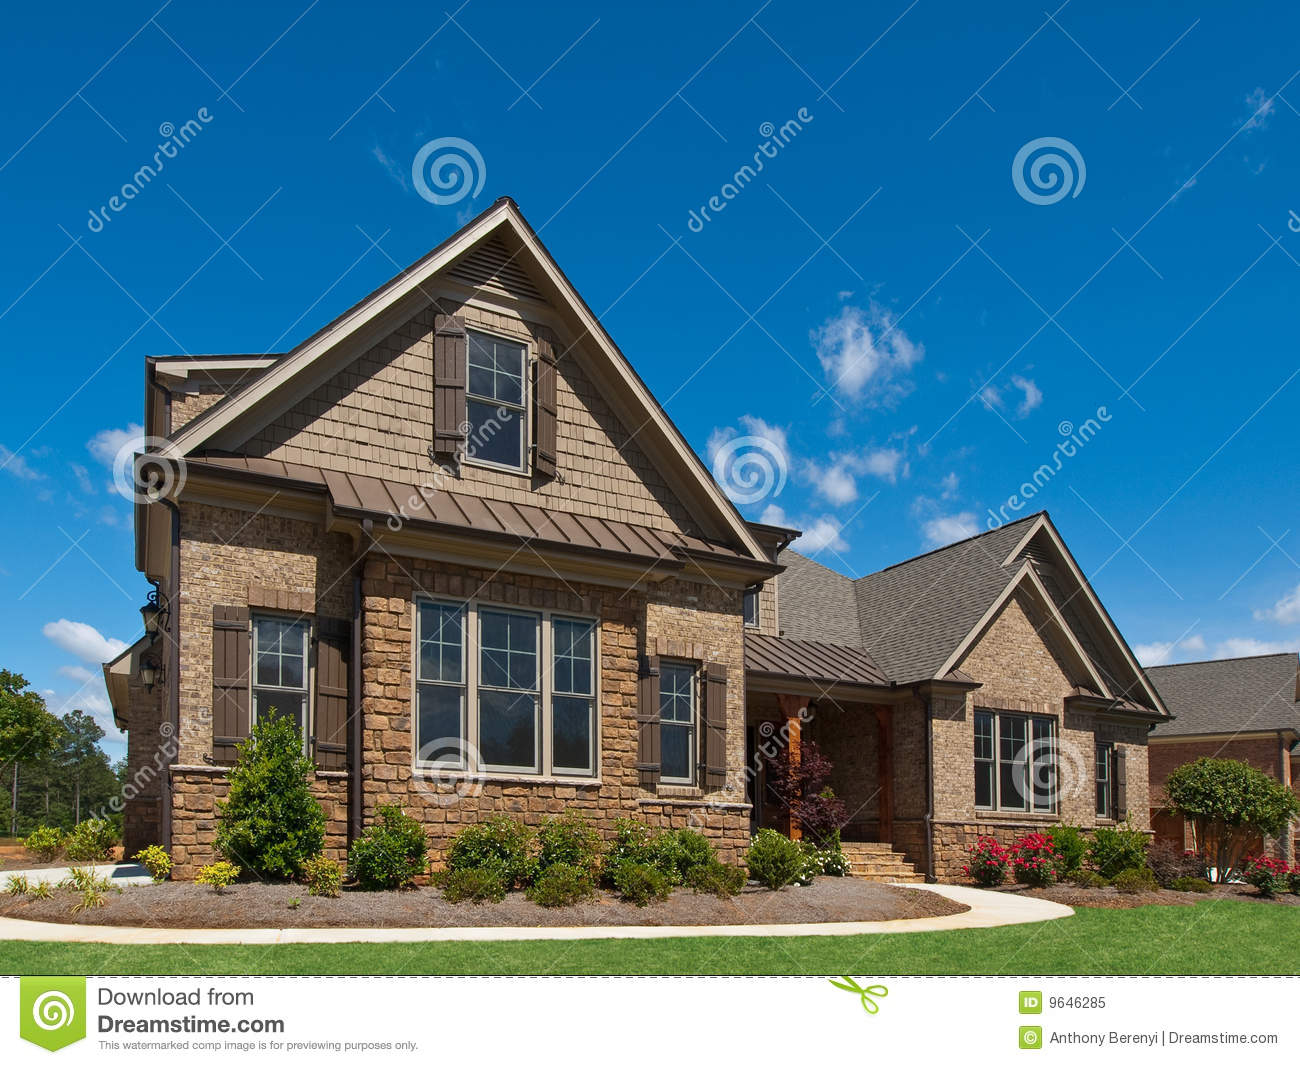 Model luxury home exterior angle view sidewalk stock image for What is a luxury home